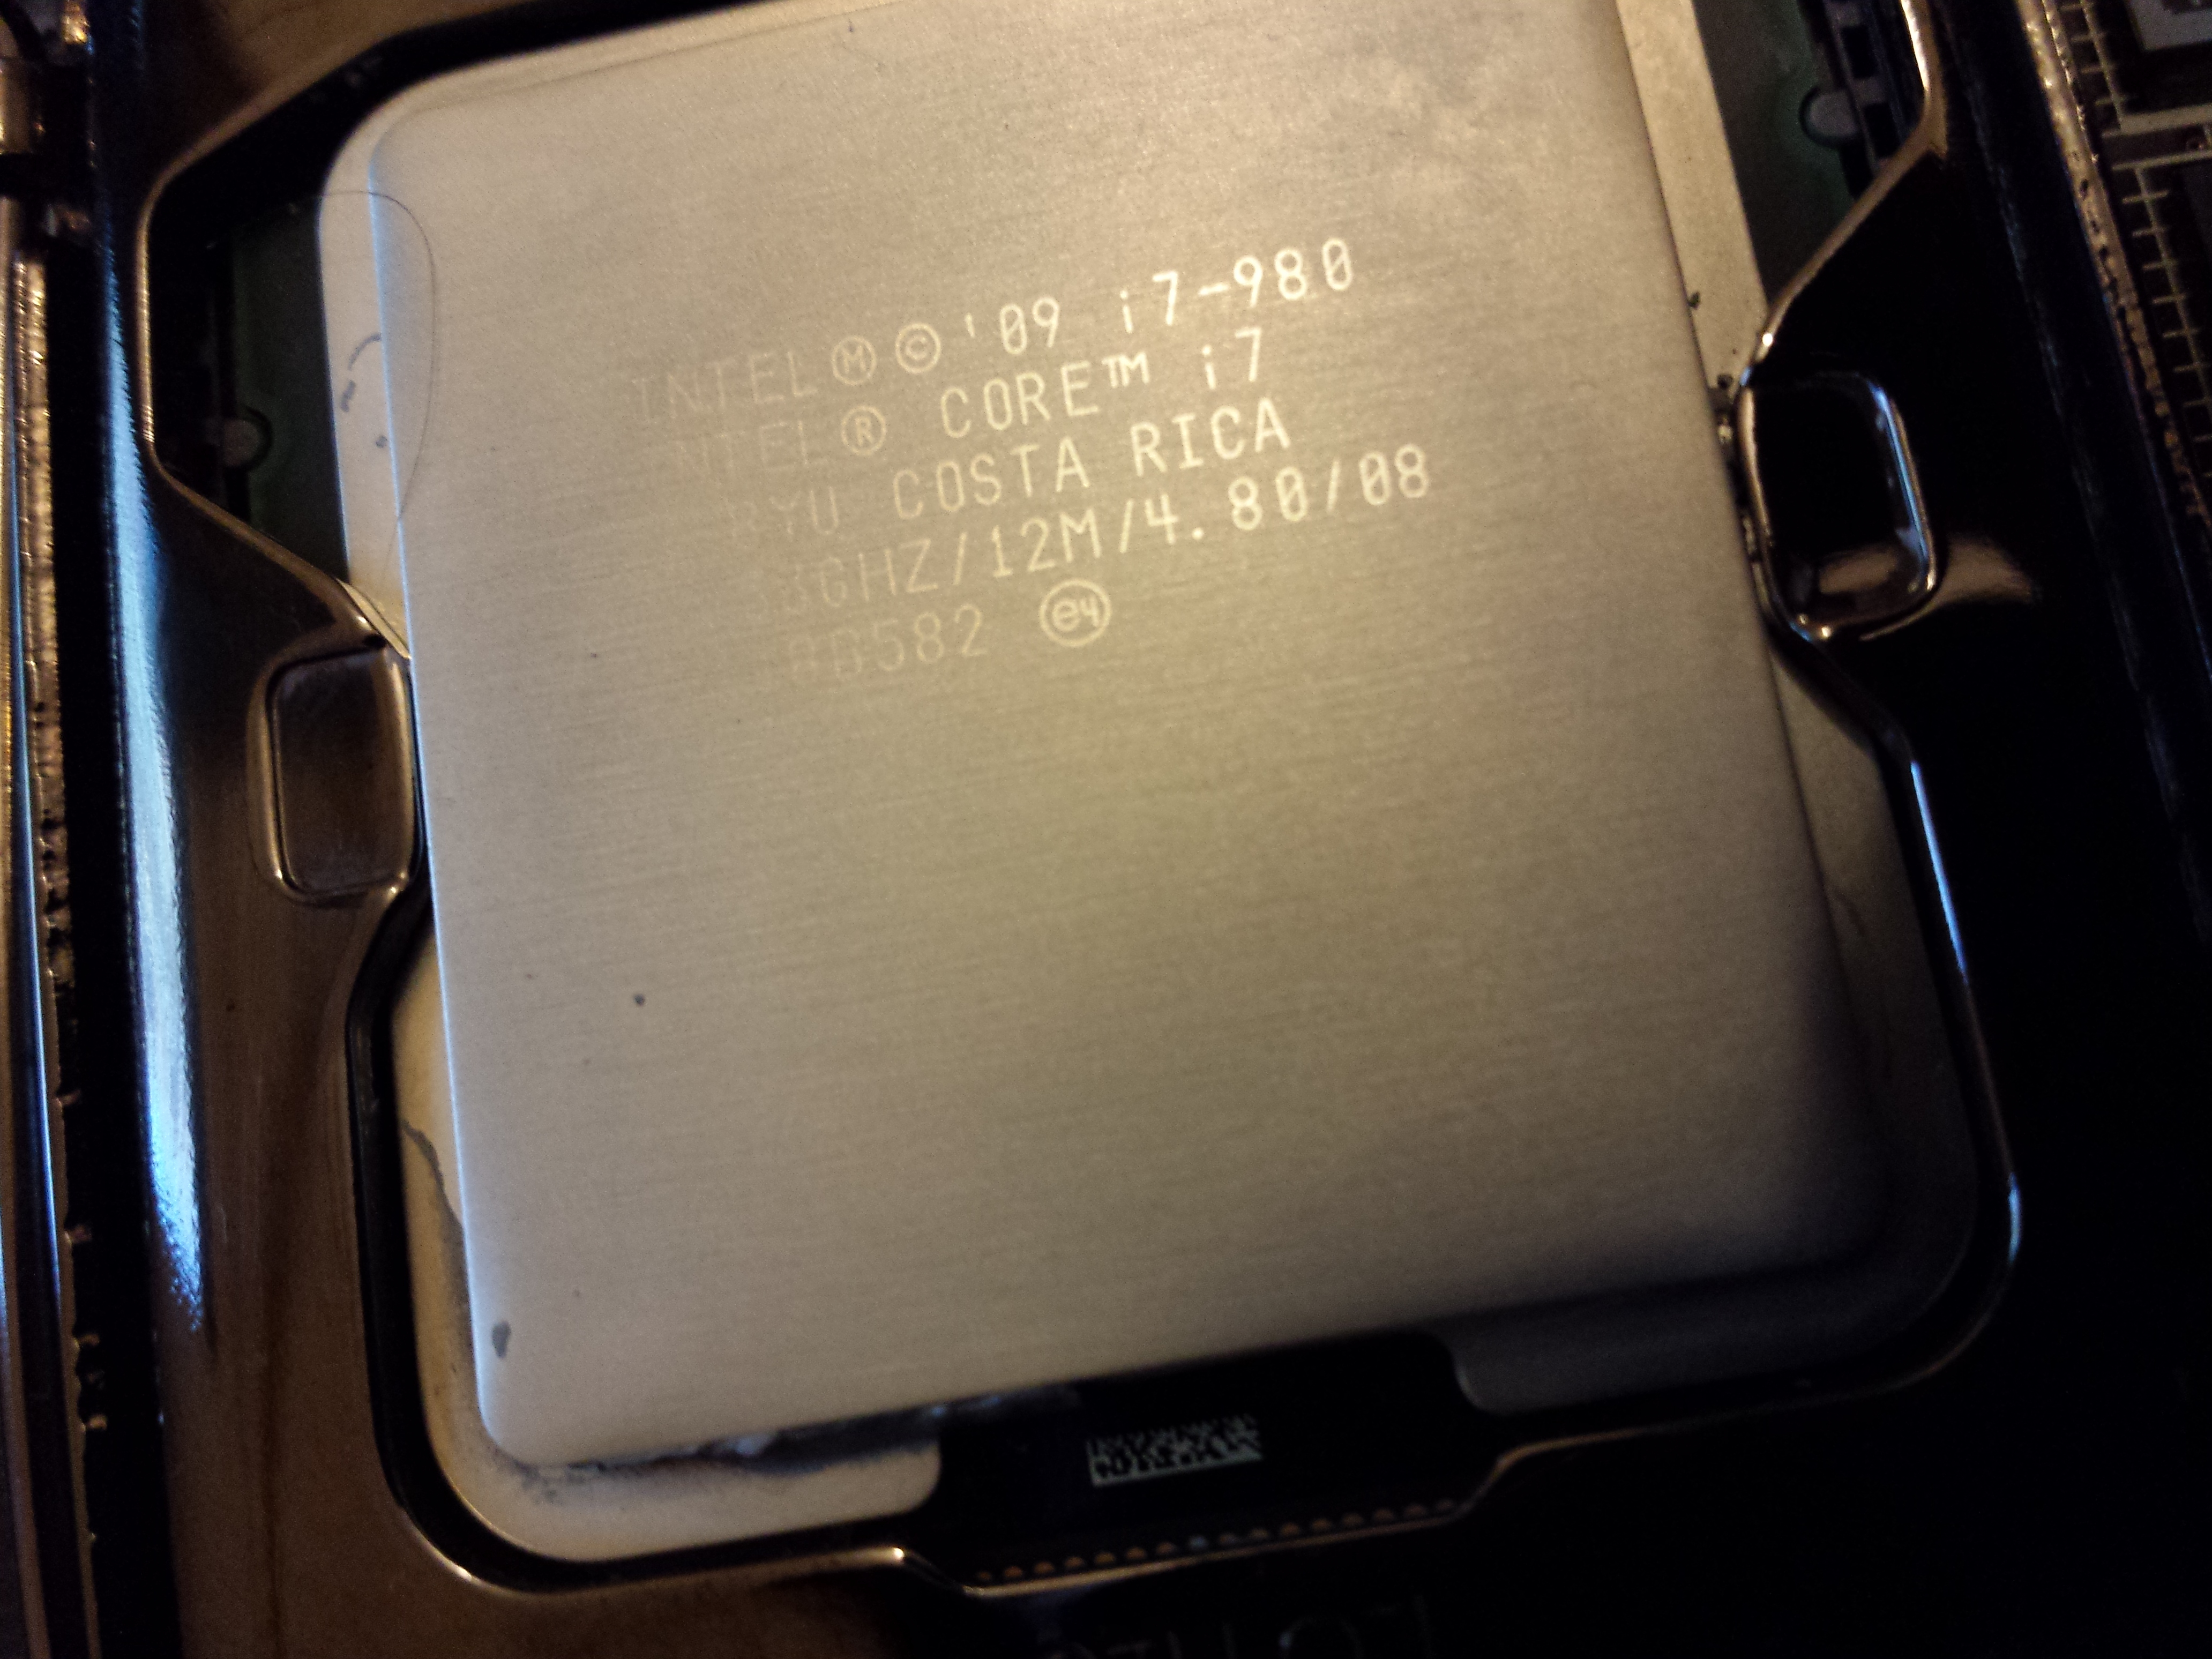 Official] - X58 Xeon Club - - Page 786 - Overclock net - An